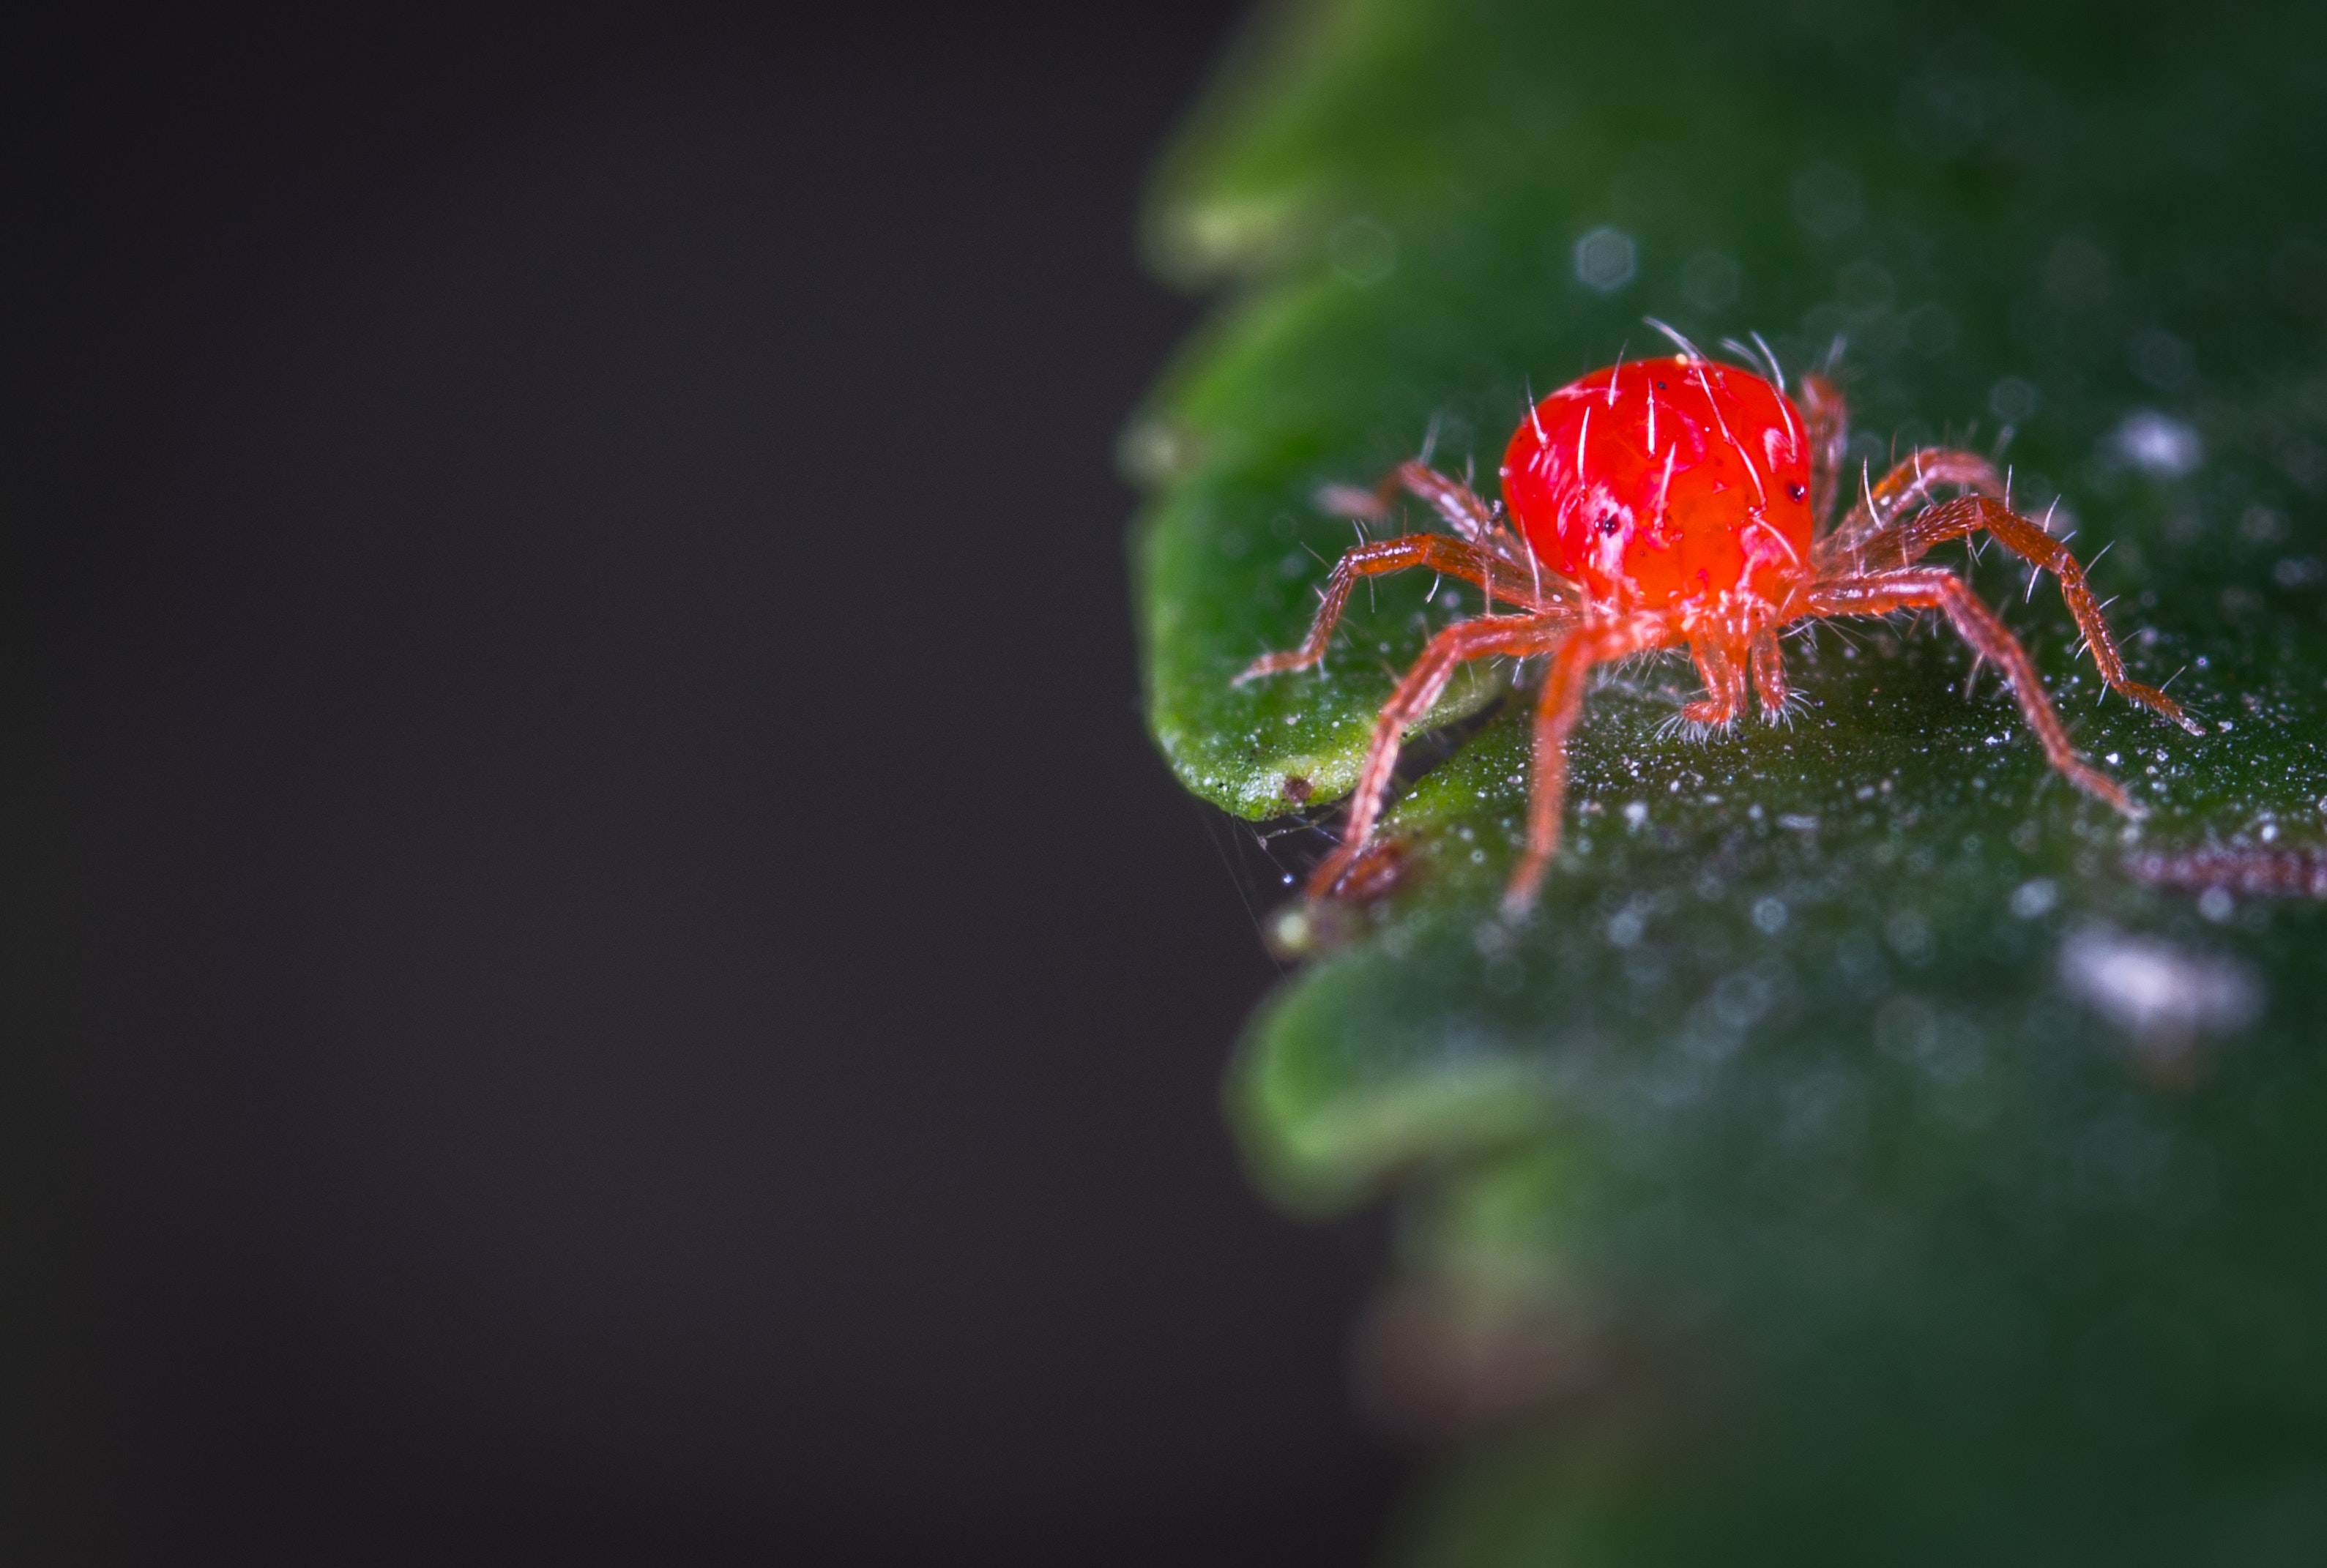 Close-up Photography of Red Spider Mites, Animal, Insect, Pest, Outdoors, HQ Photo